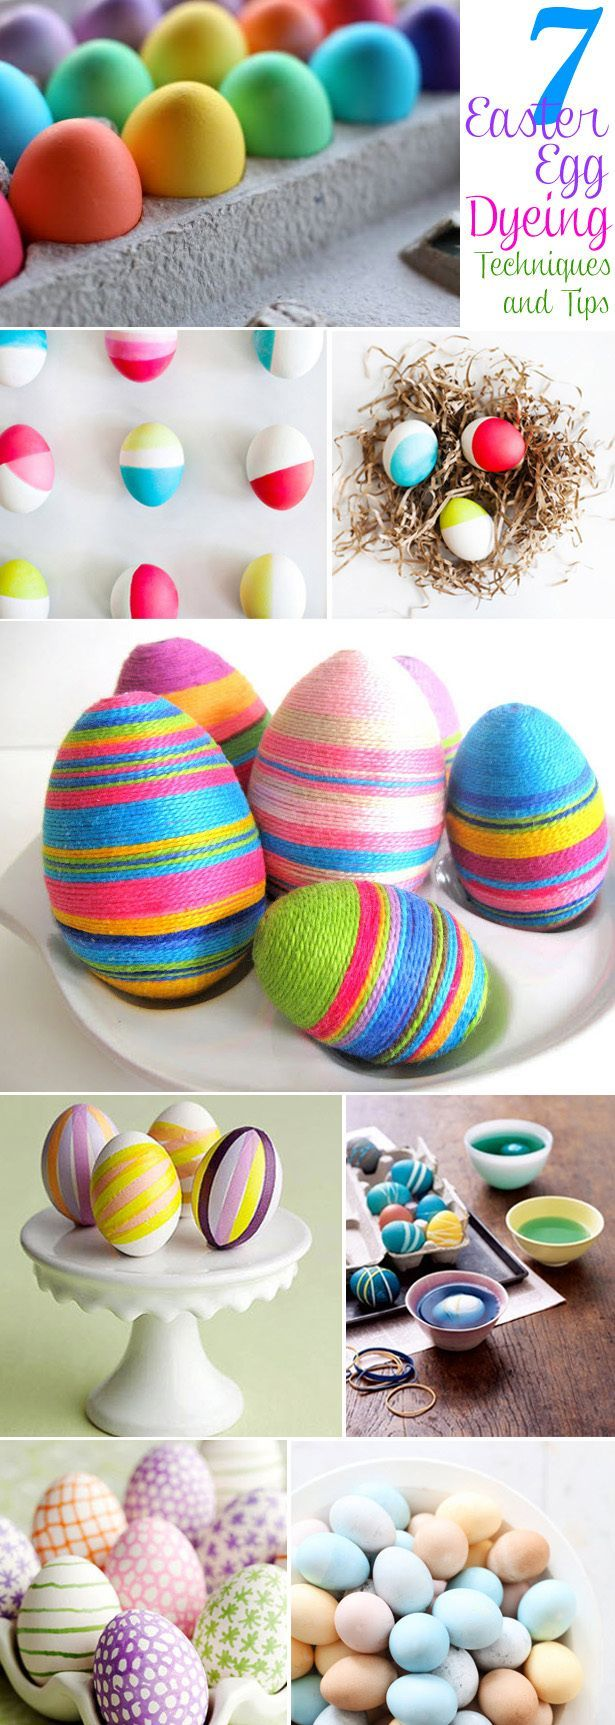 7 Easter egg dyeing techniques | TheCelebrationShoppe.com